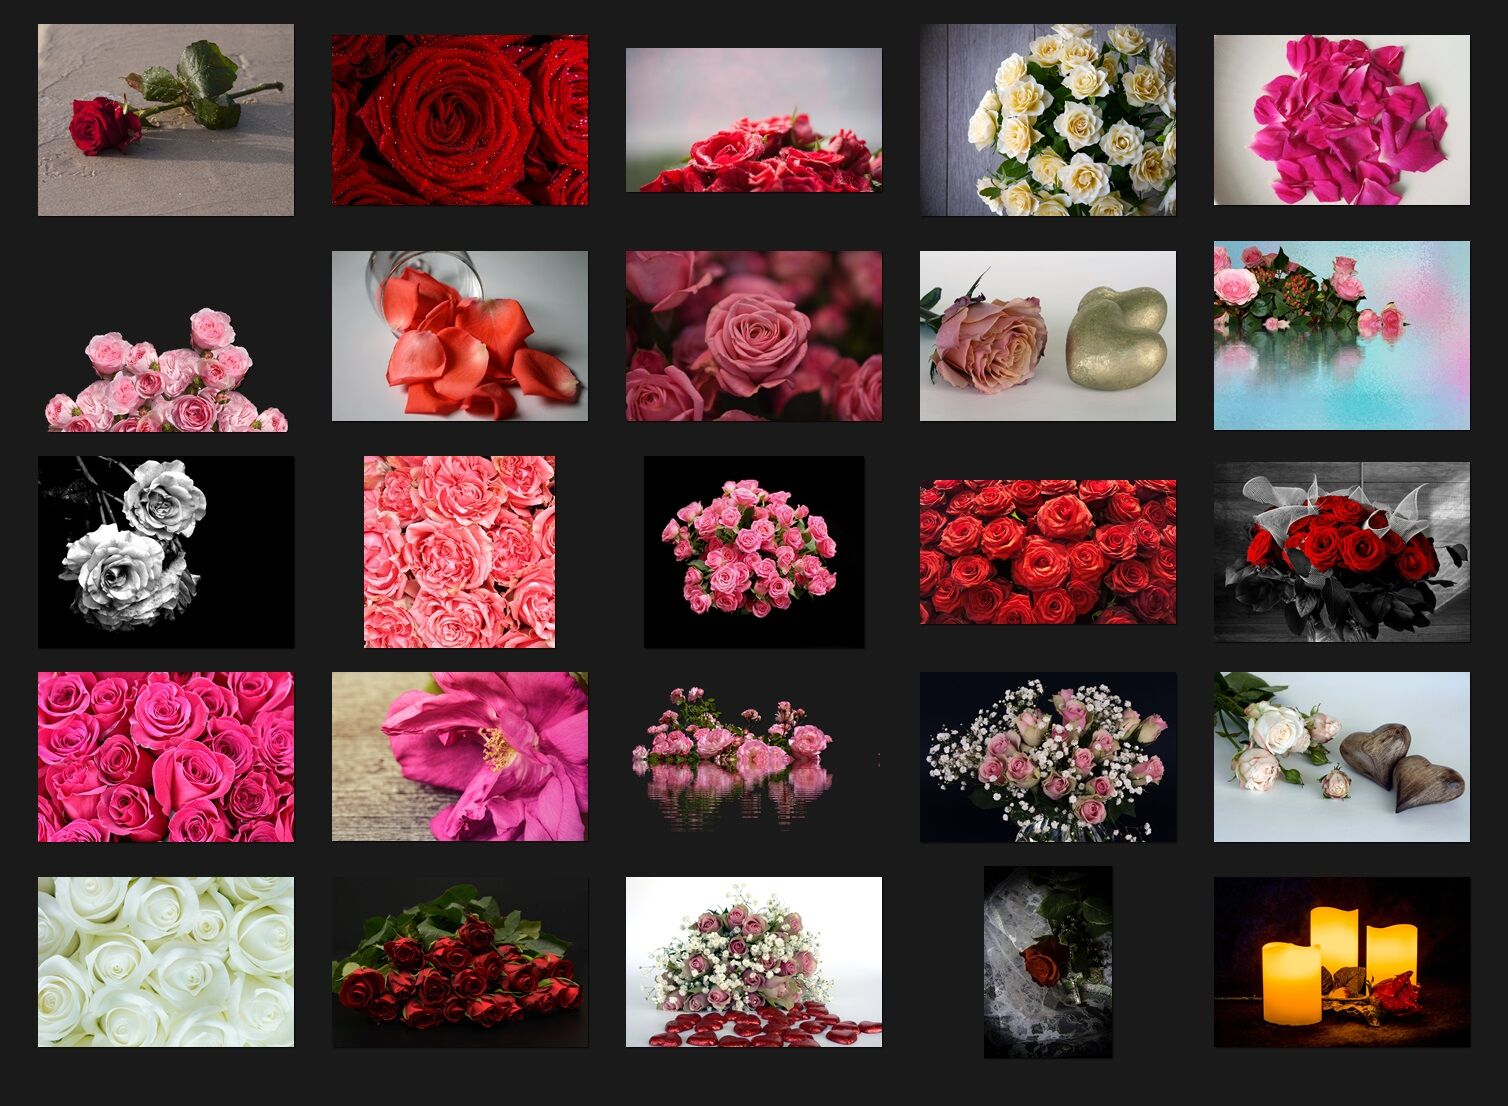 200 HIGH QUALITY ROSES, Flower, Digital Photoshop Overlays By